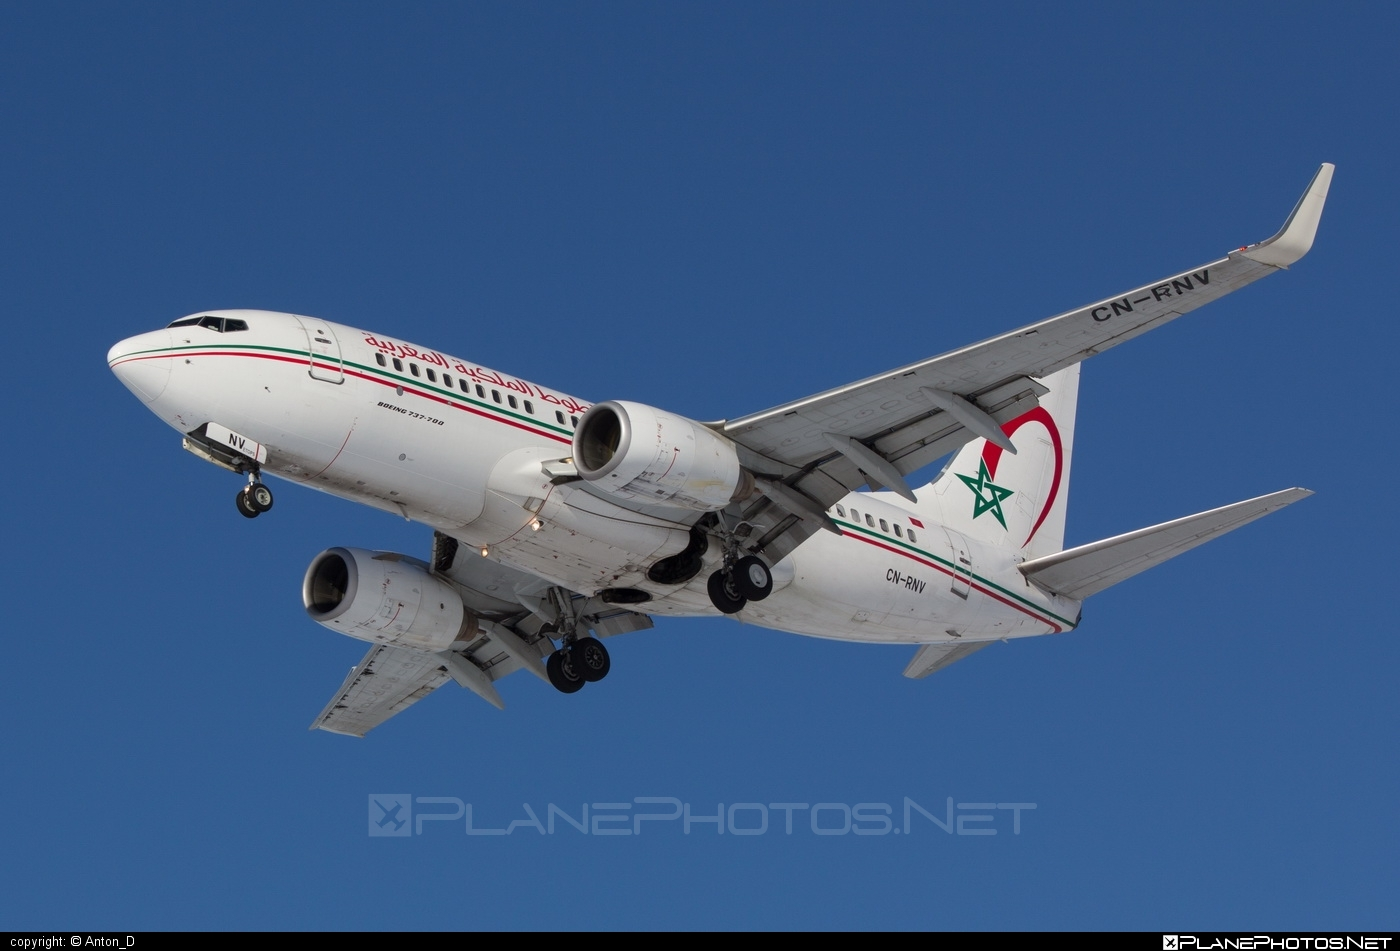 Boeing 737-700 - CN-RNV operated by Royal Air Maroc (RAM) #b737 #b737nextgen #b737ng #boeing #boeing737 #royalairmaroc